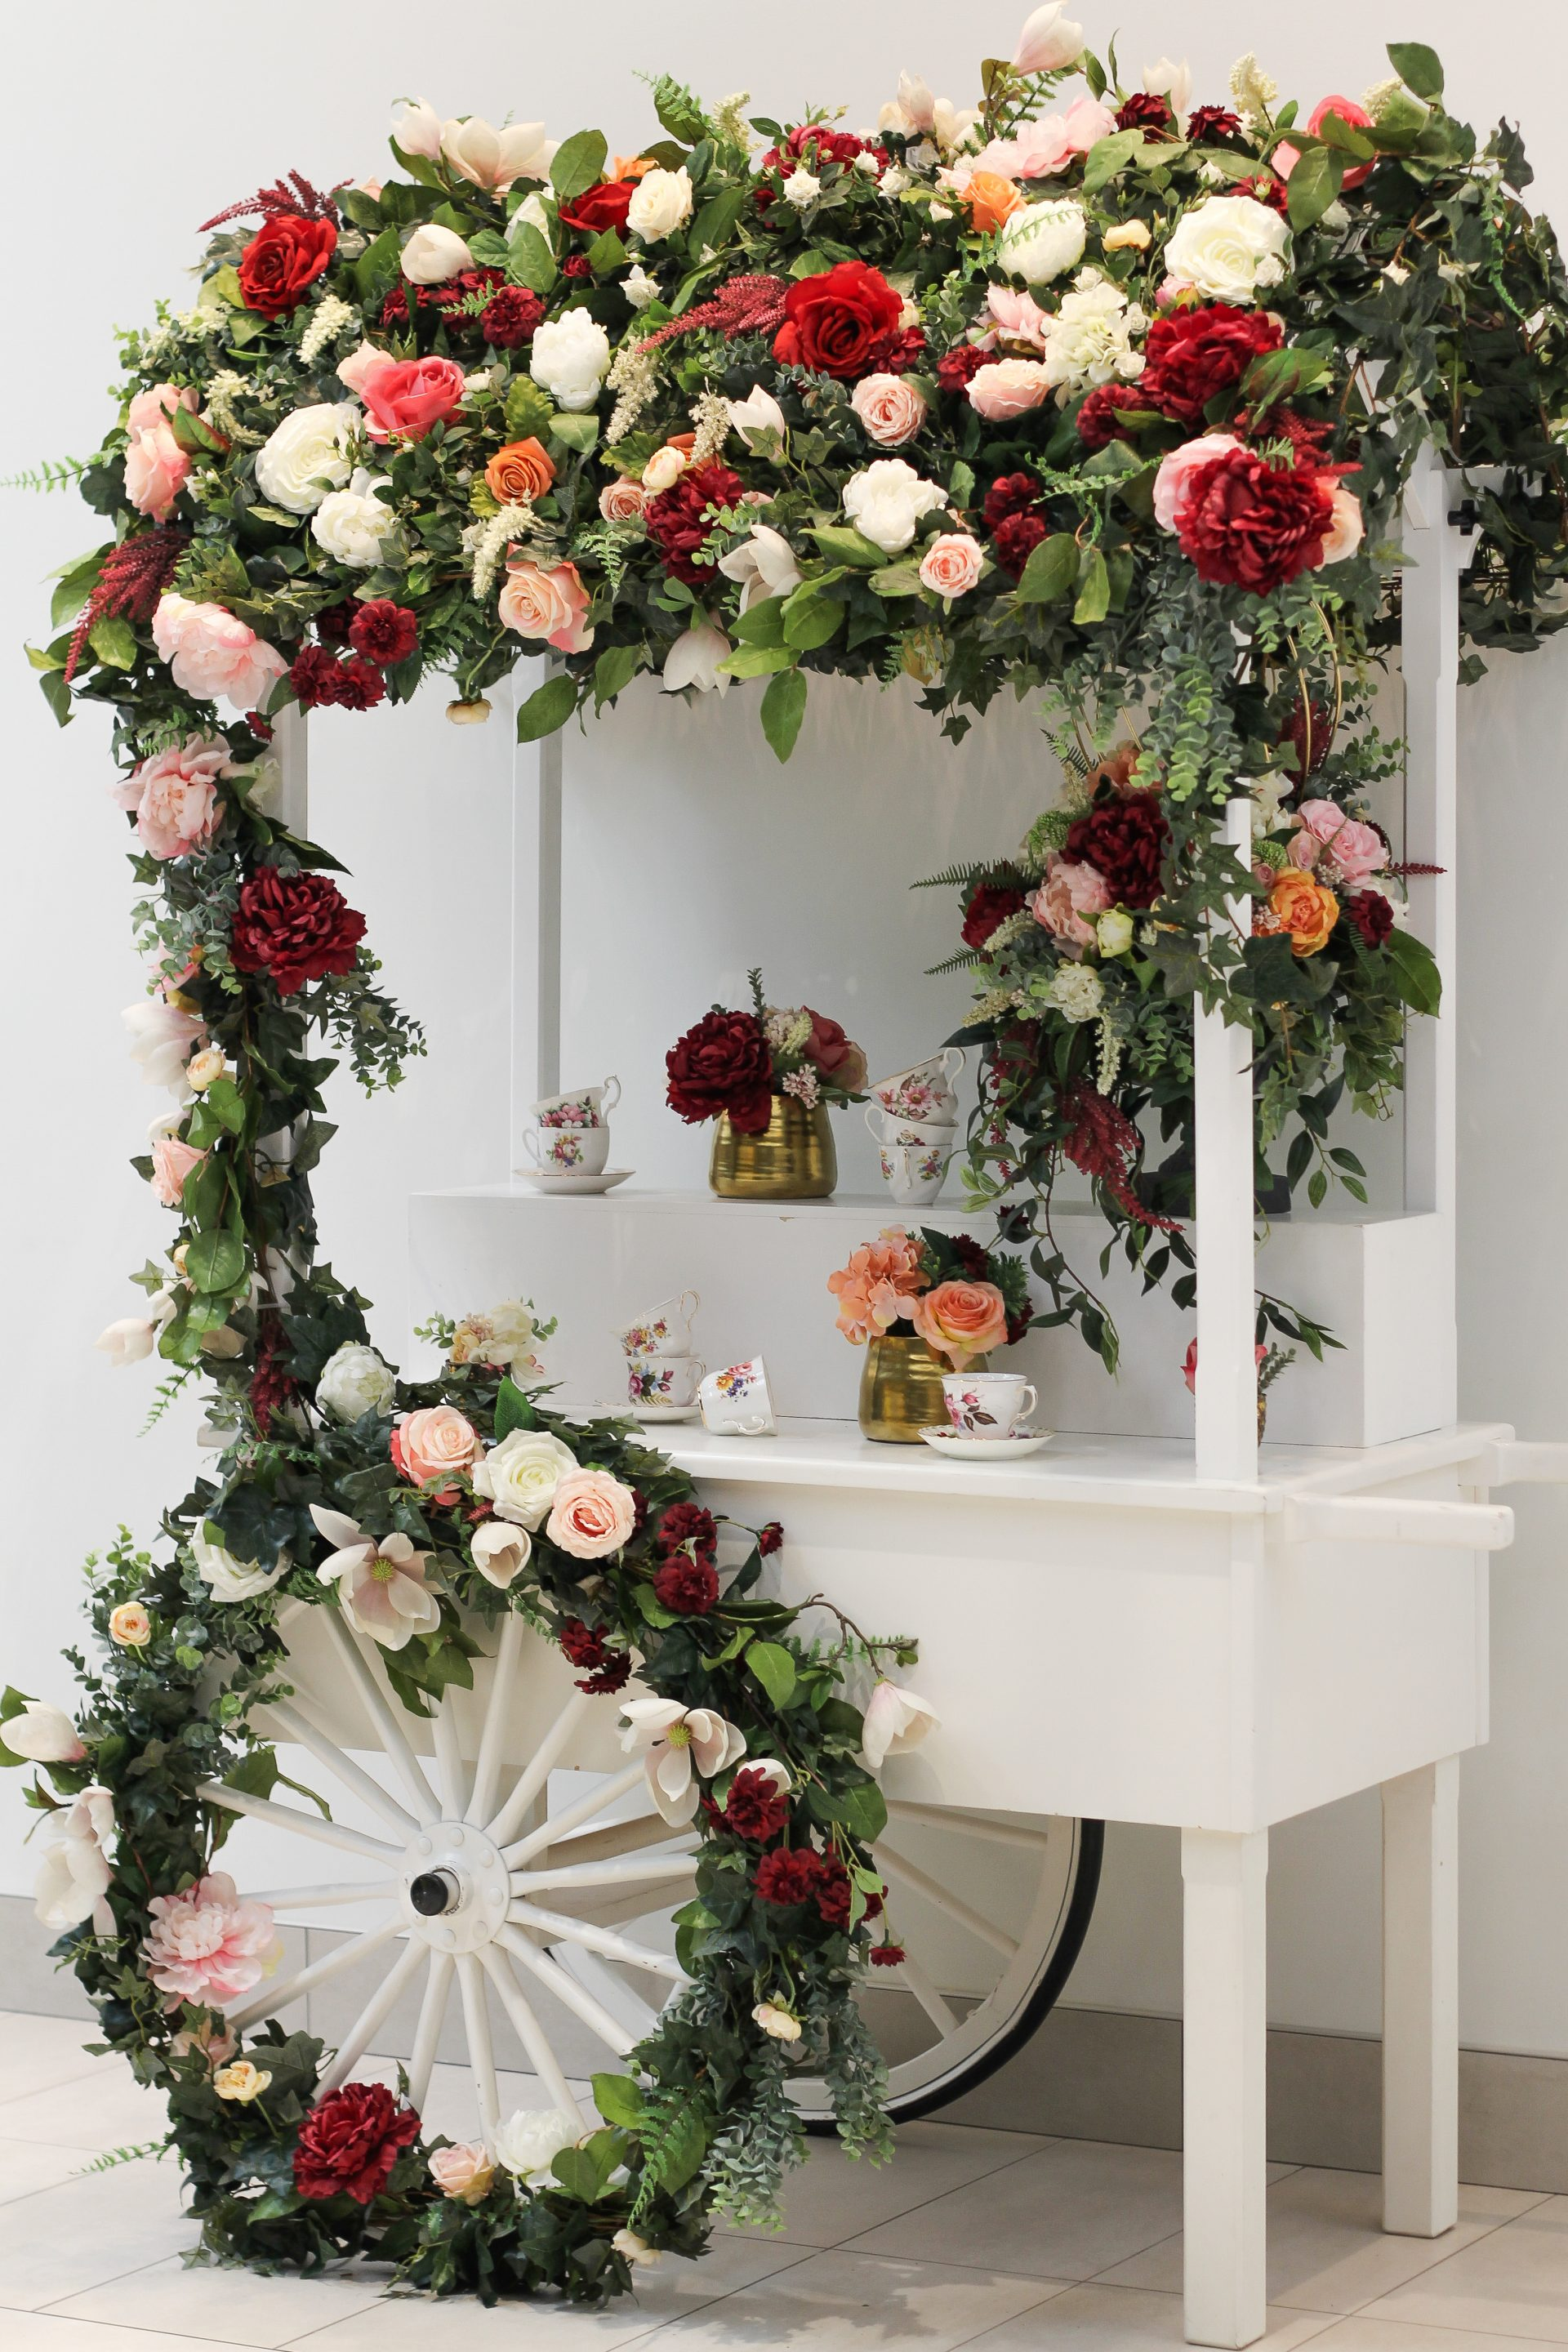 White flower cart on wheels adorned with flower wall roof covering and artificial floral details